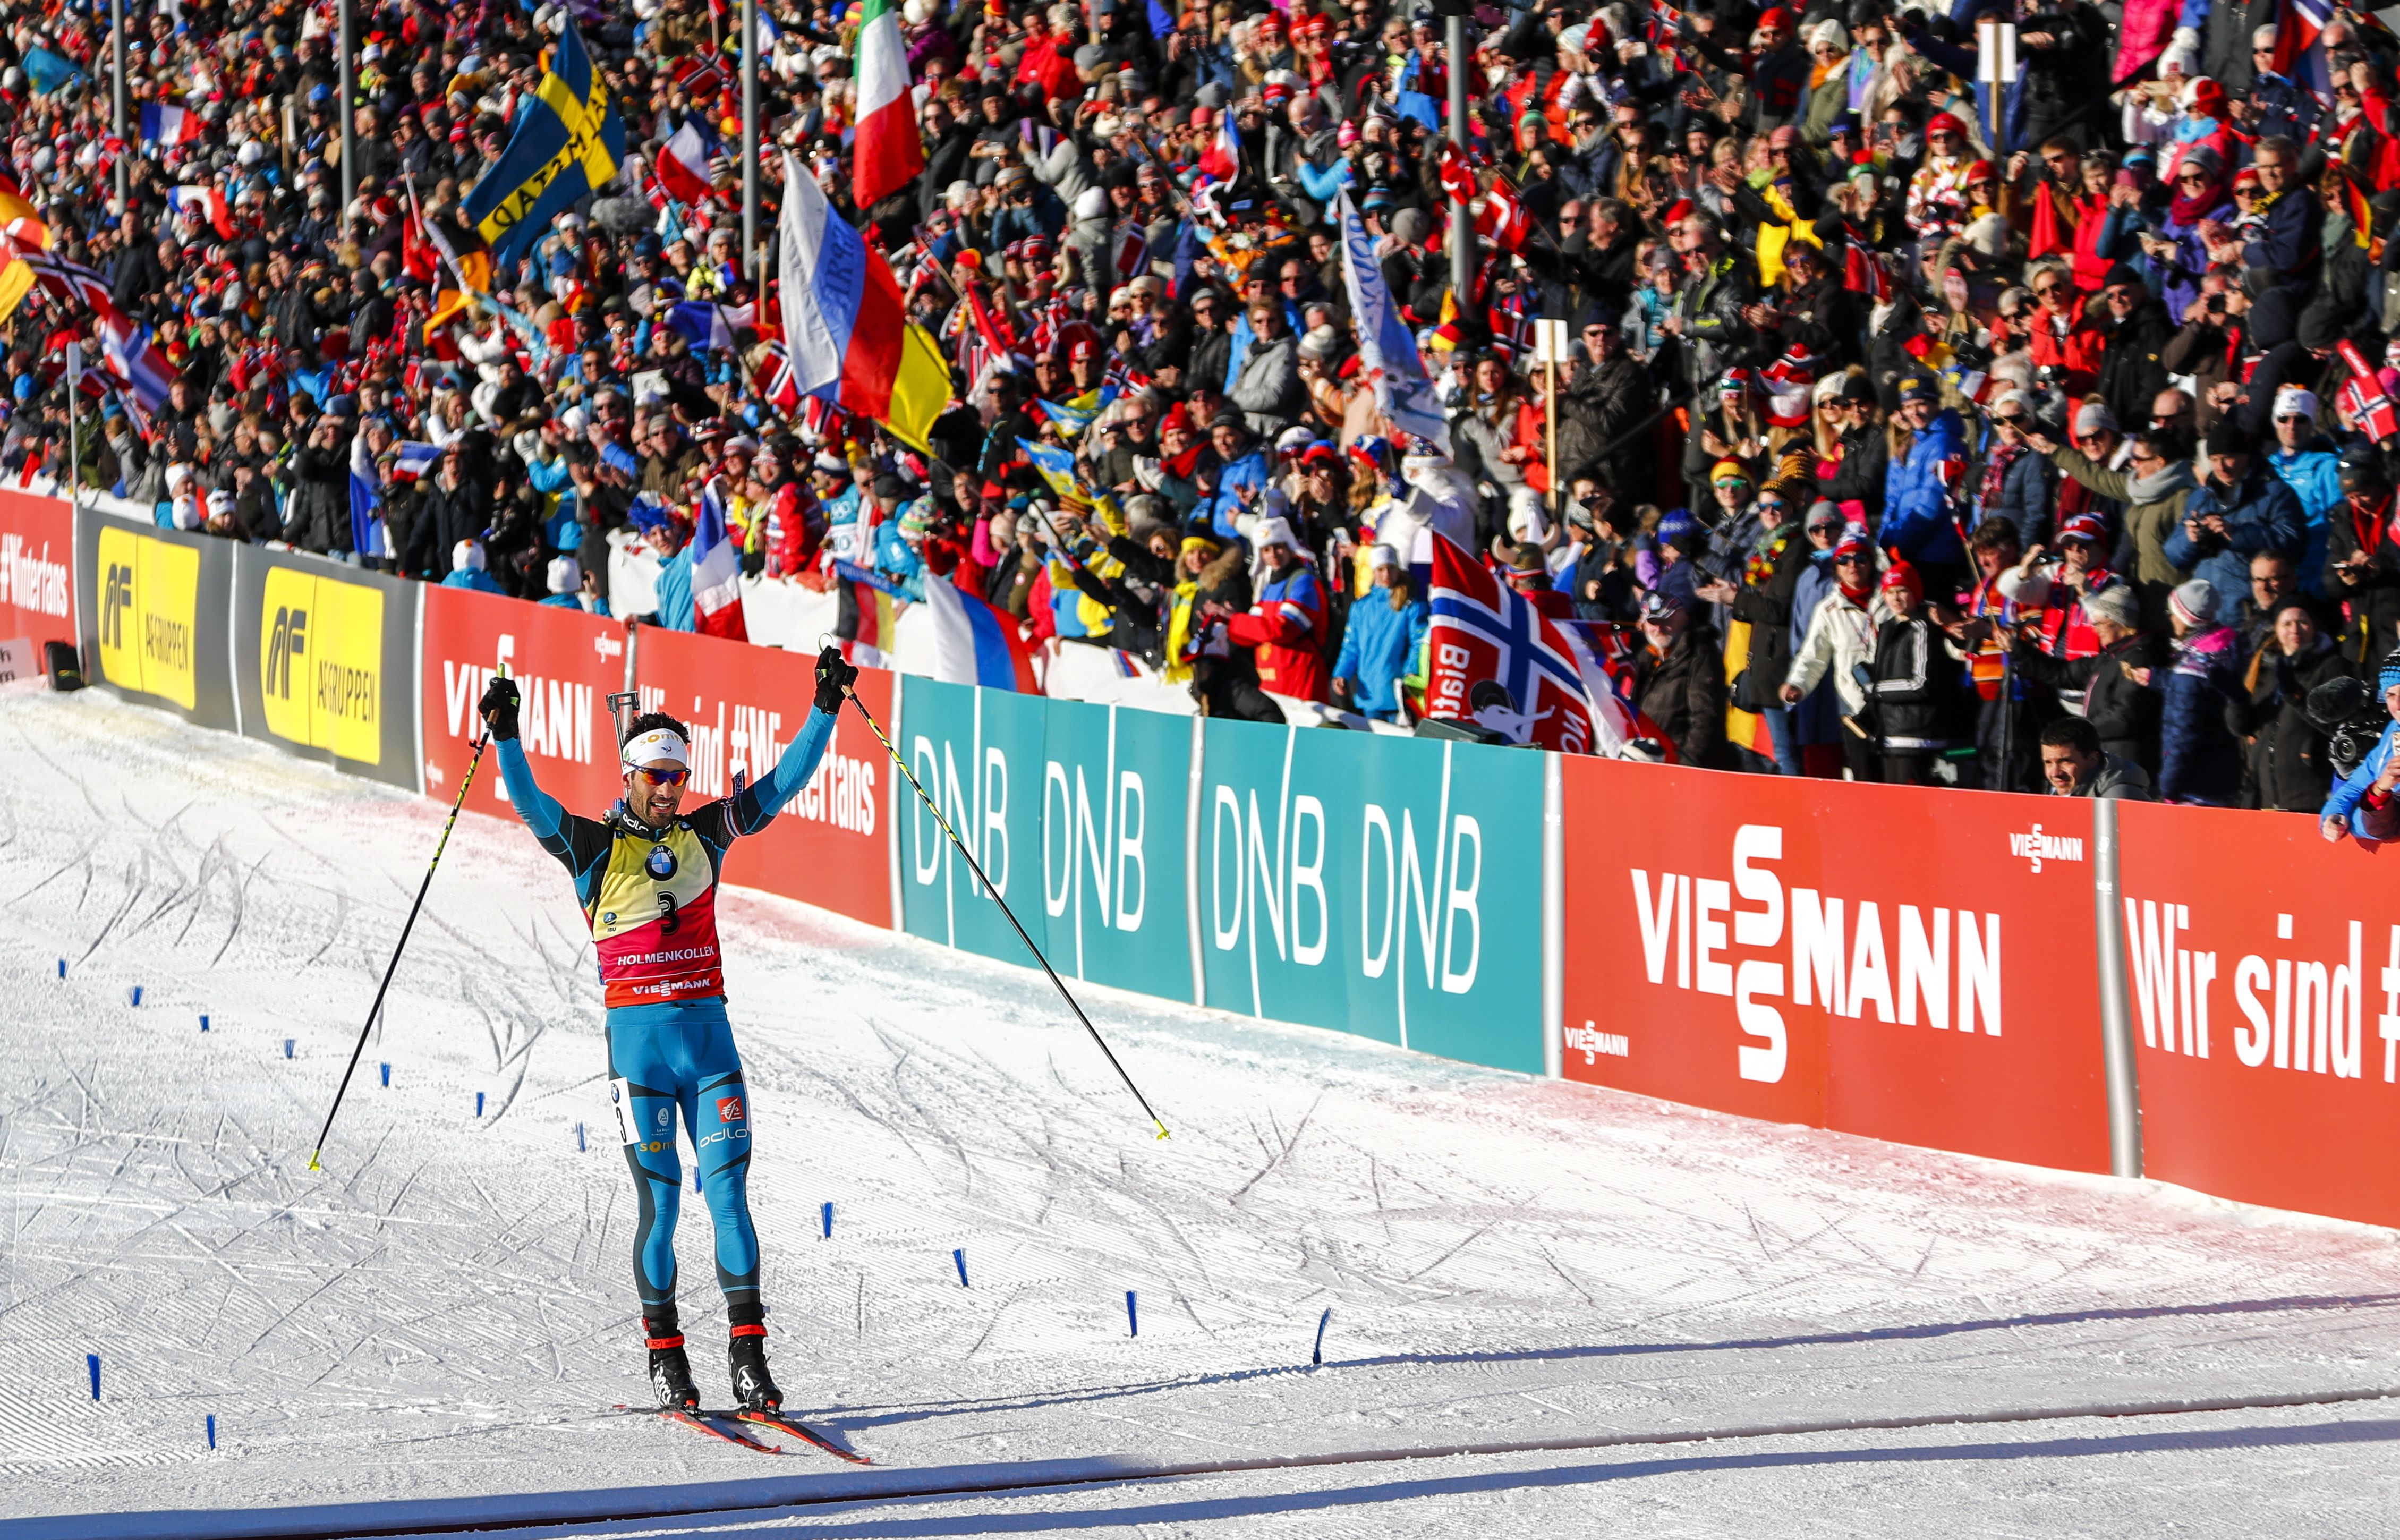 Sports d'hiver - Martin Fourcade s'approche du gros globe